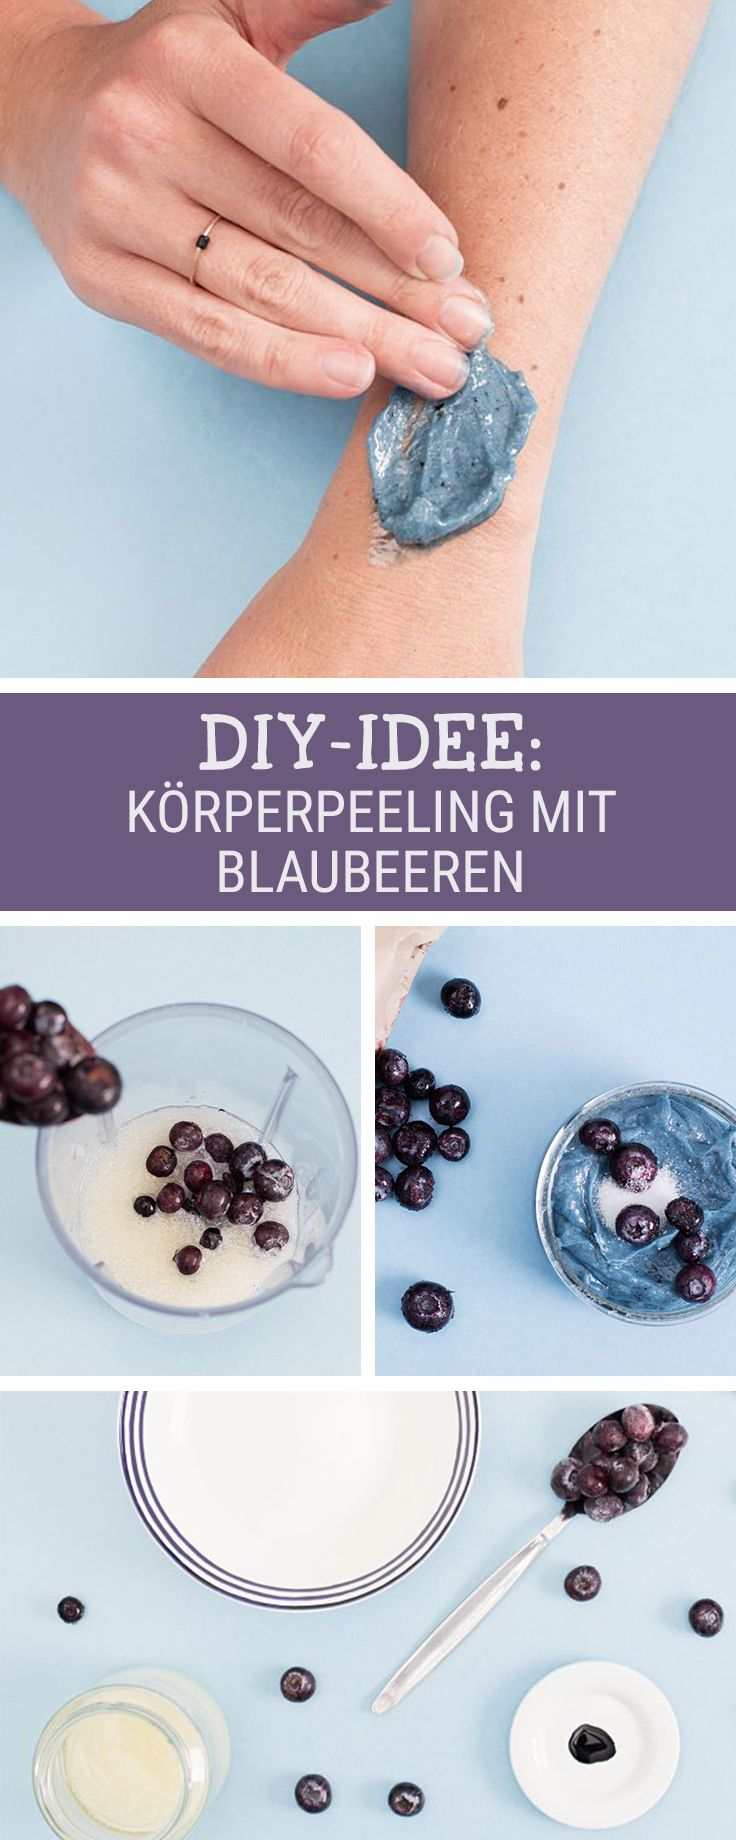 Beauty-DIY: Fruchtiges Peeling aus Blaubeeren für den Körper selbermachen / make a blueberry peeling for a smooth skin via DaWanda.com